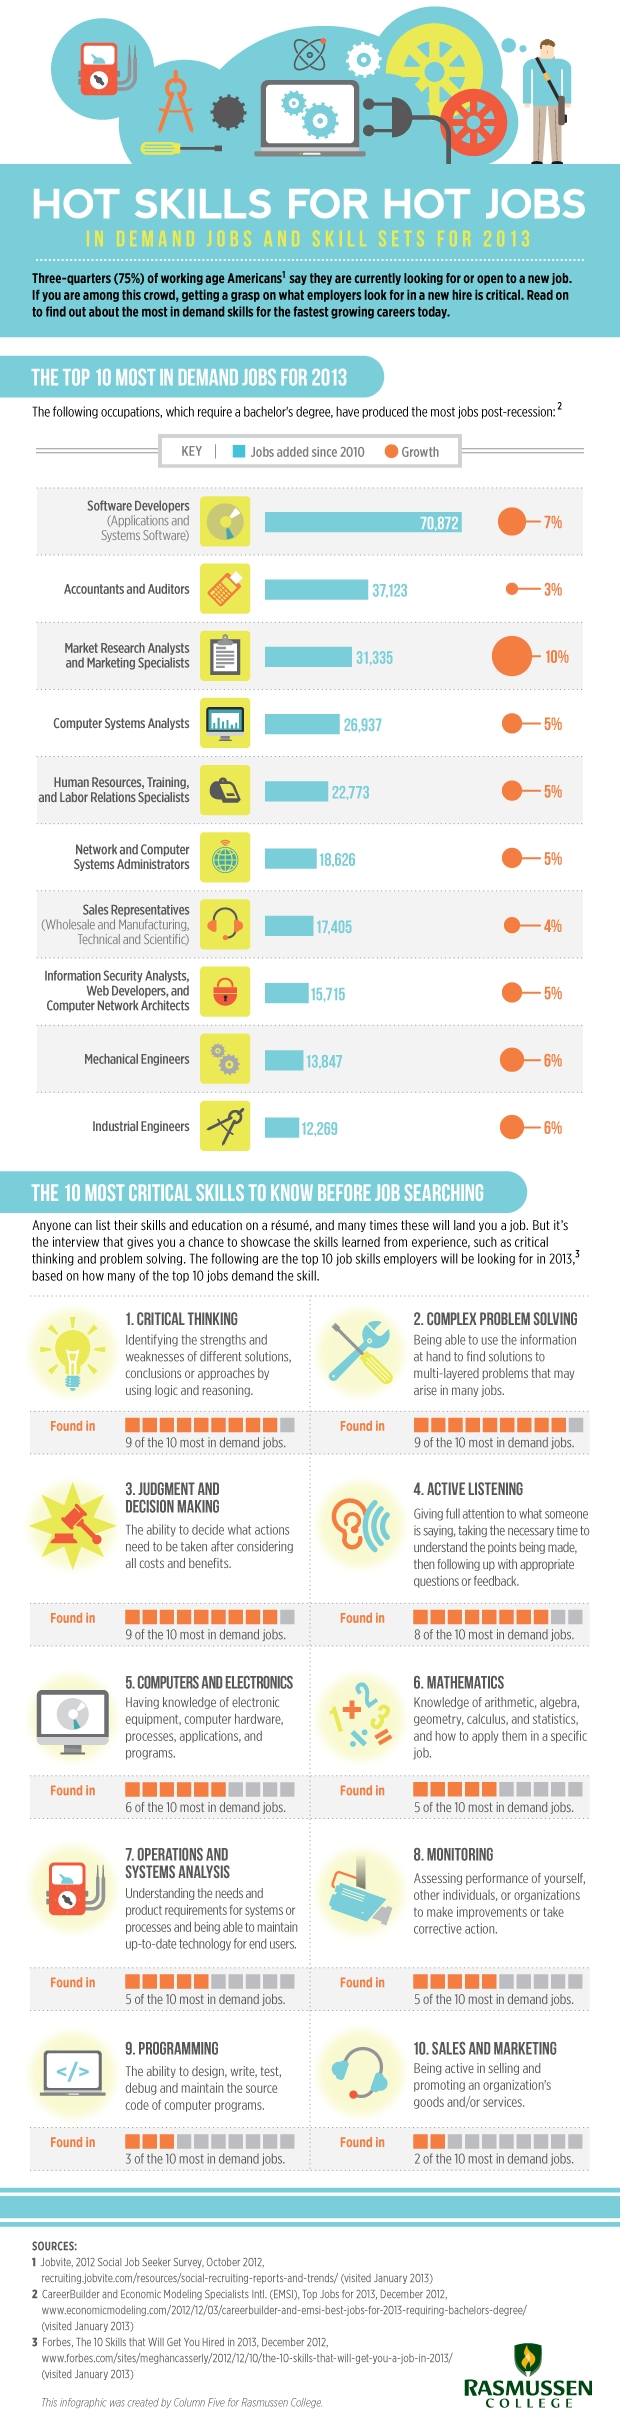 Hot Skills for Job Seekers to Possess in 2013 image